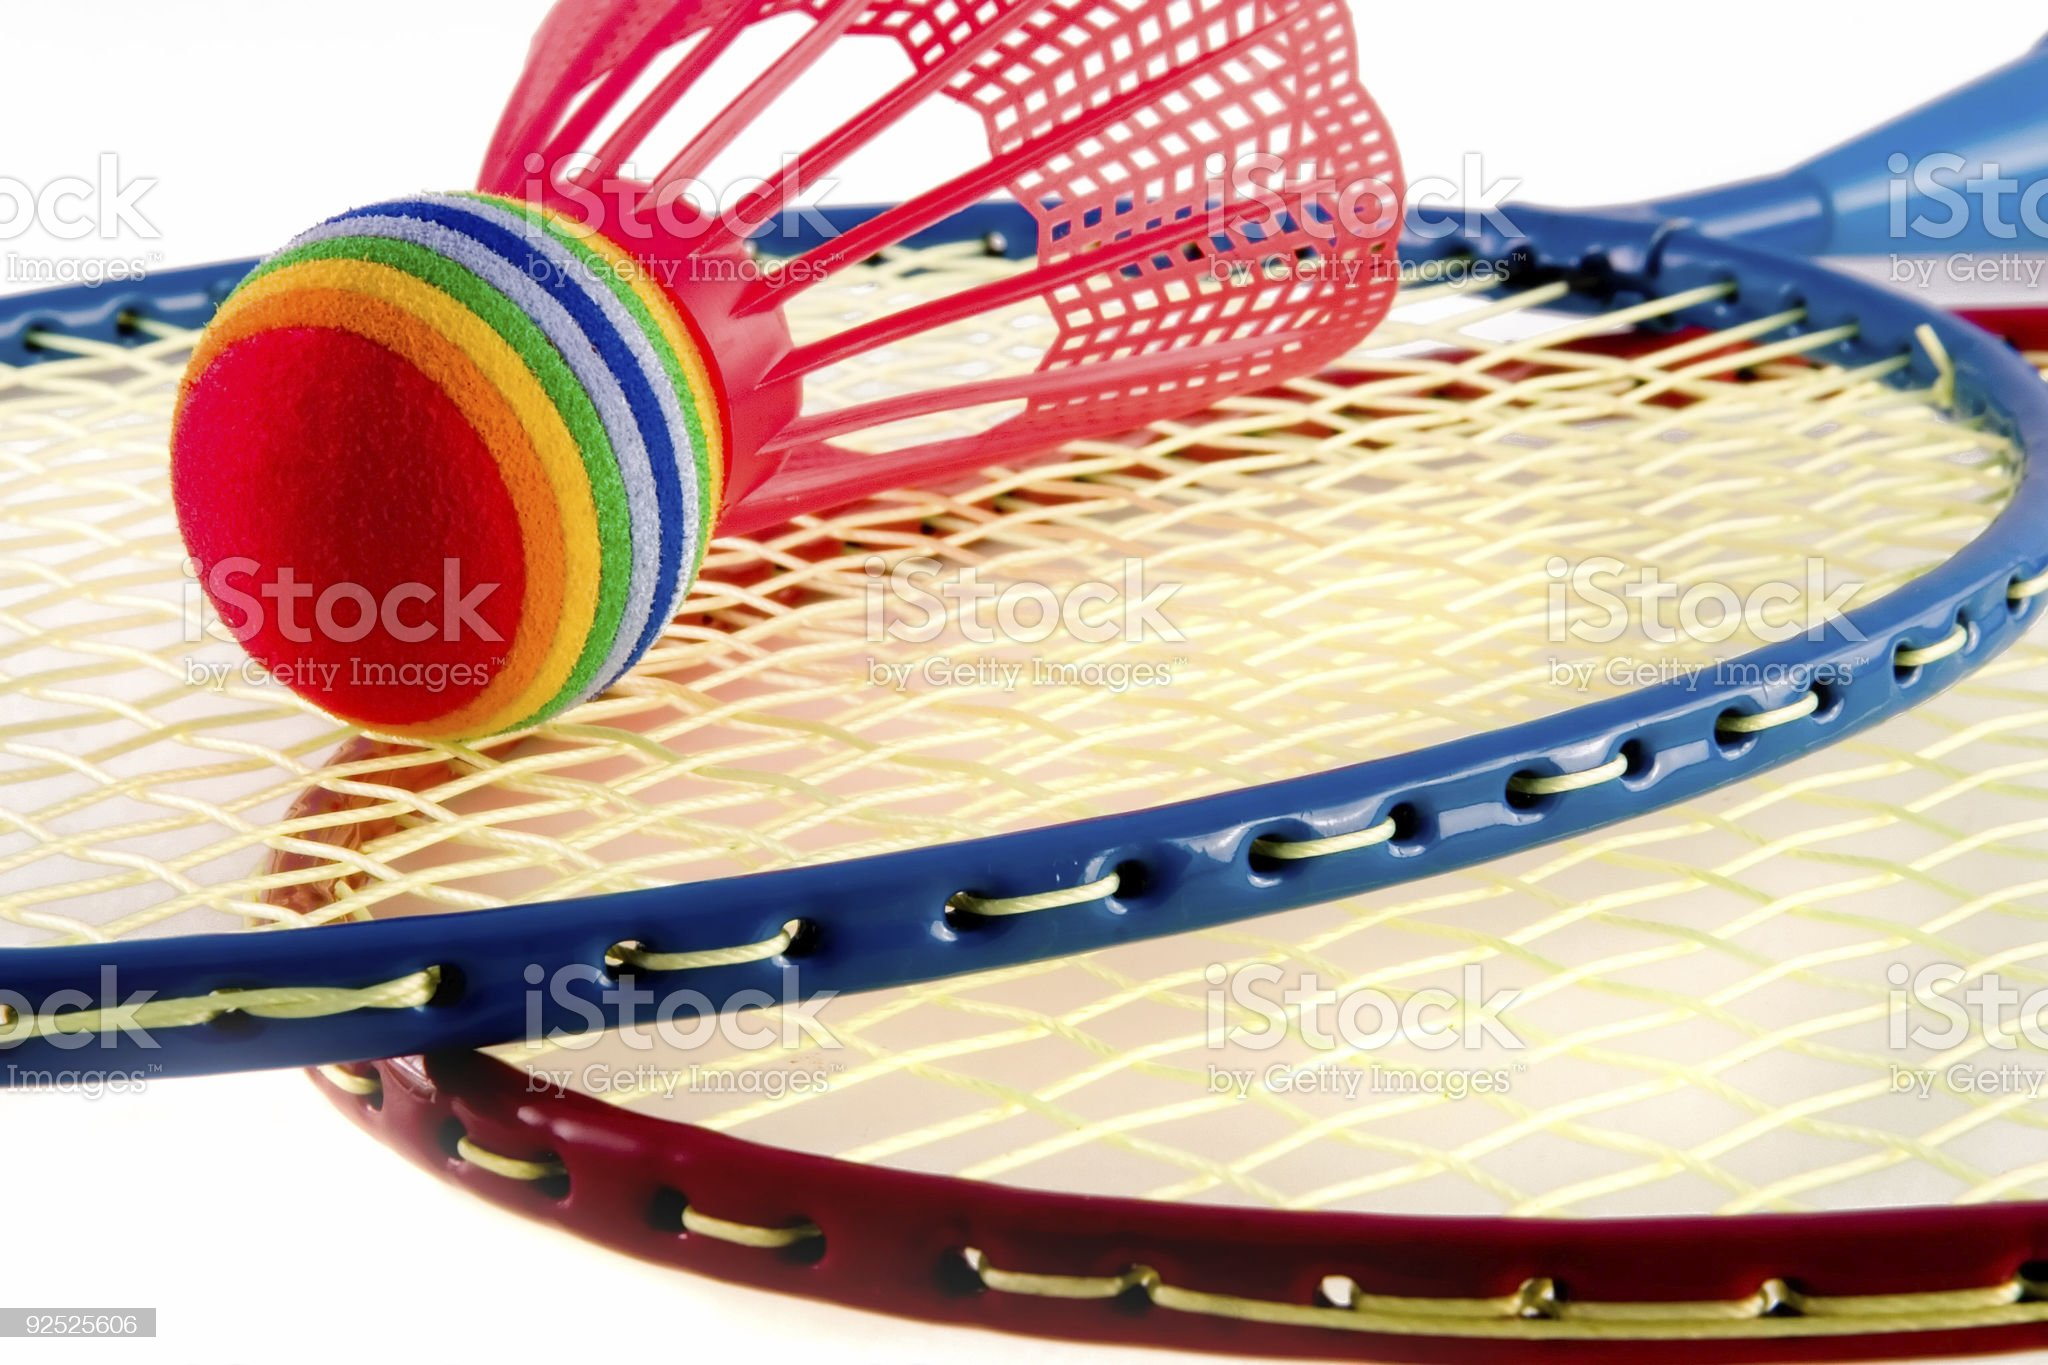 Colorful Raquet Sports royalty-free stock photo